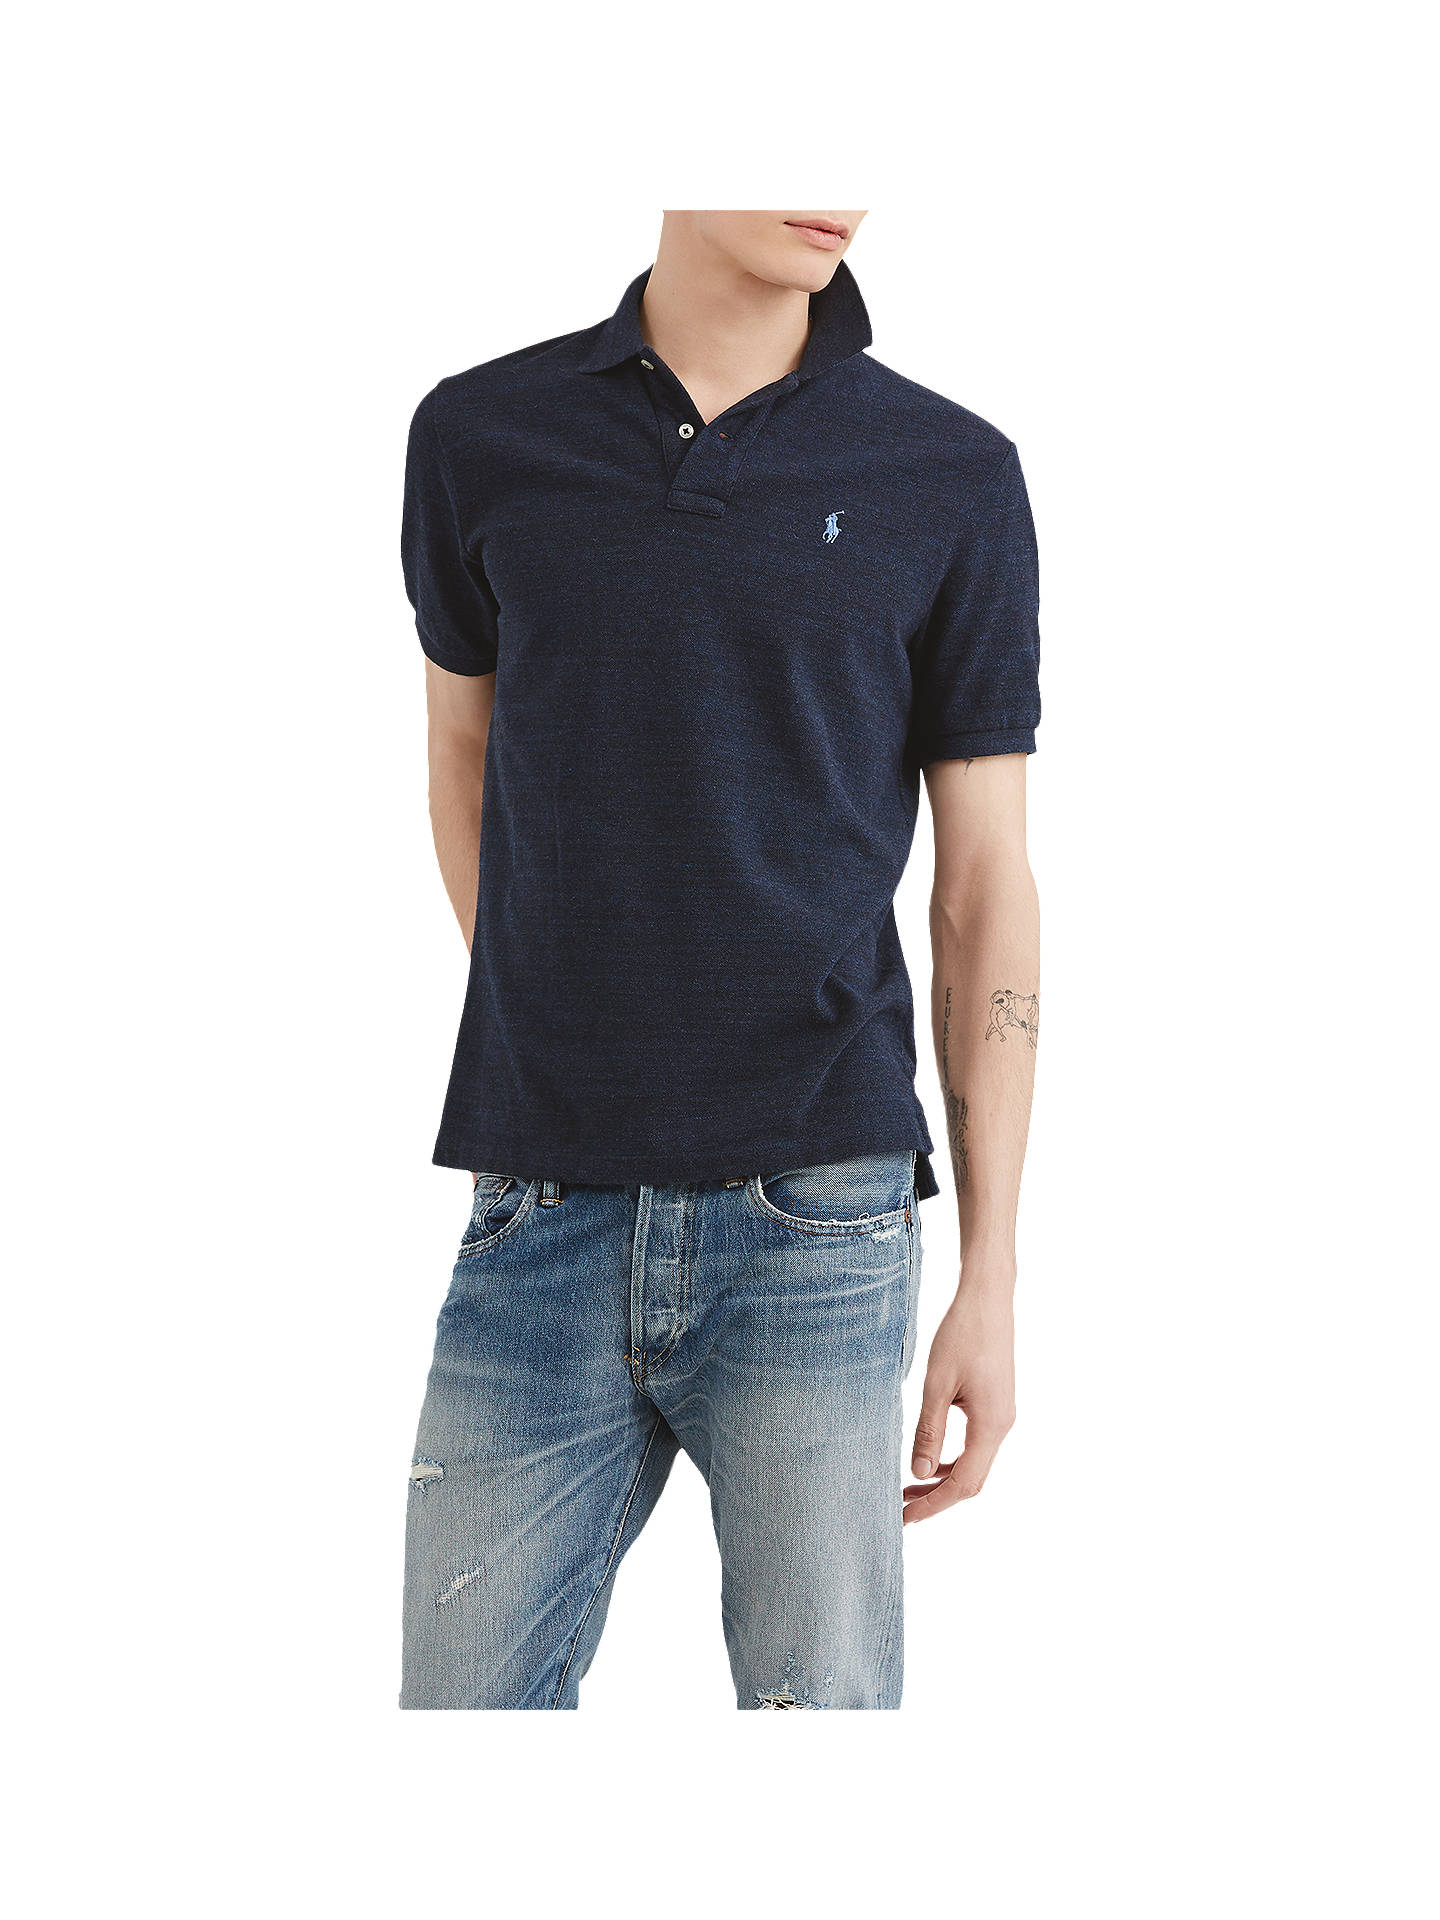 BuyPolo Ralph Lauren Custom Slim Polo Shirt, Worth Navy Heather, S Online at johnlewis.com